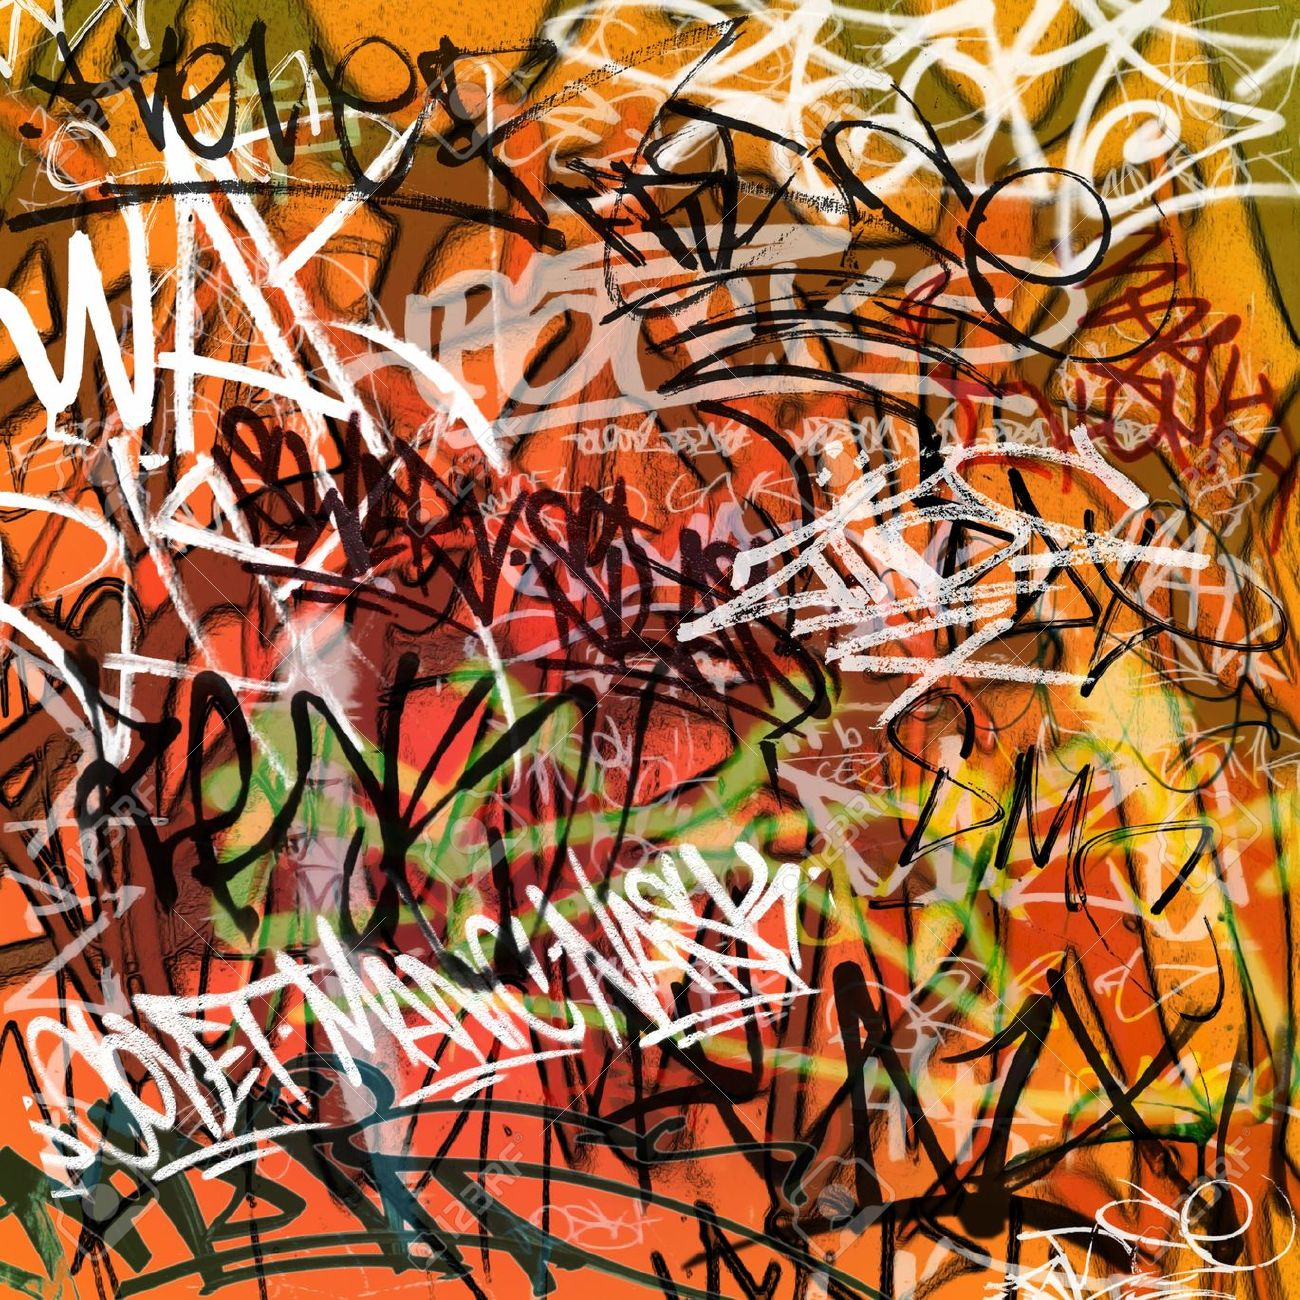 Grafitti wall background - Graffiti Background A Messy Graffiti Wall Background